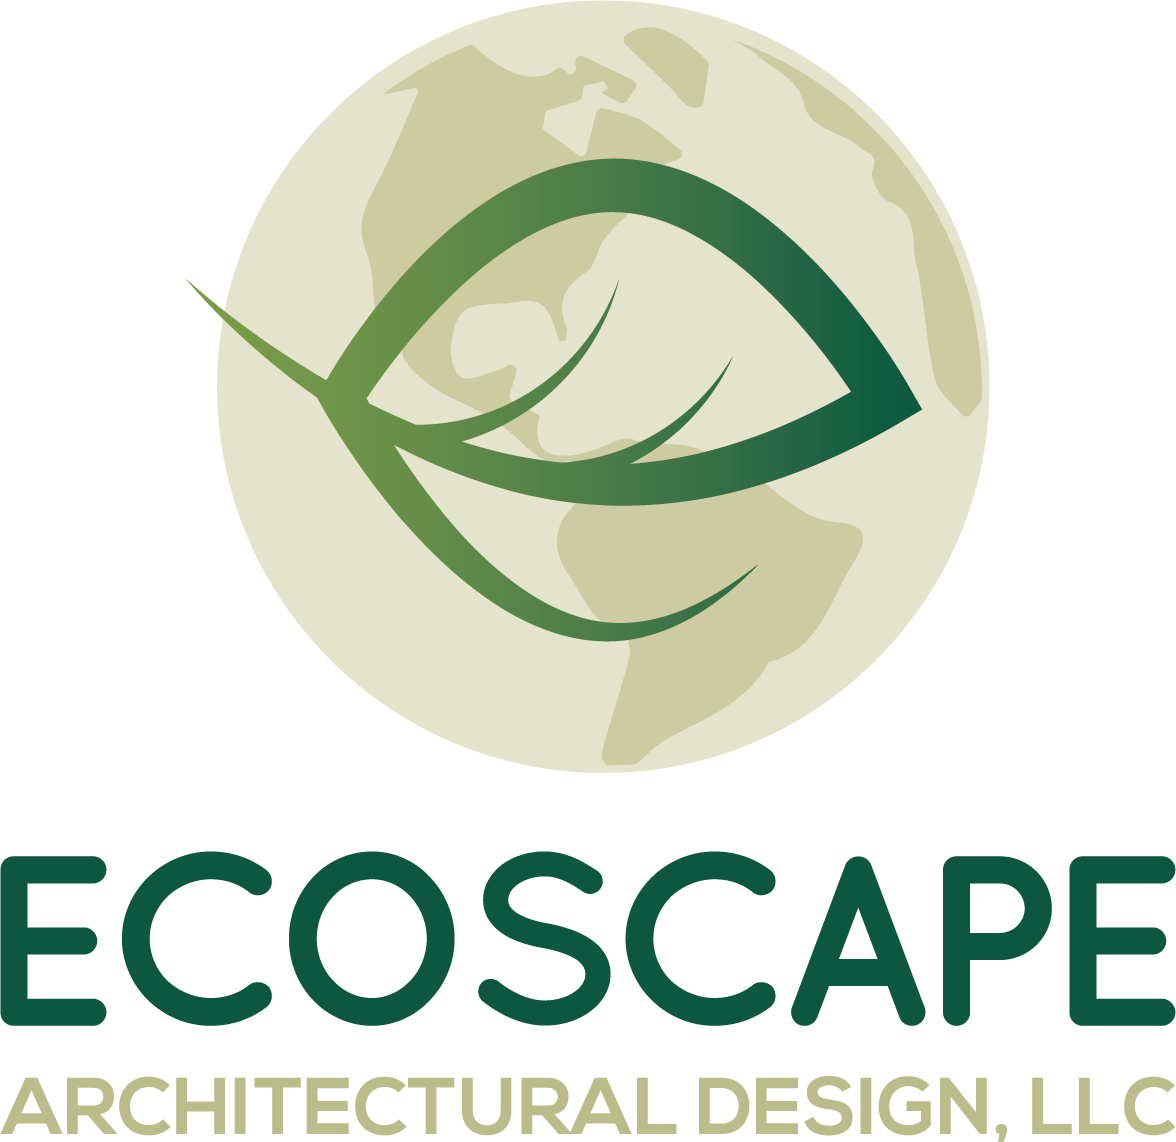 Ecoscape Architectural Design LLC